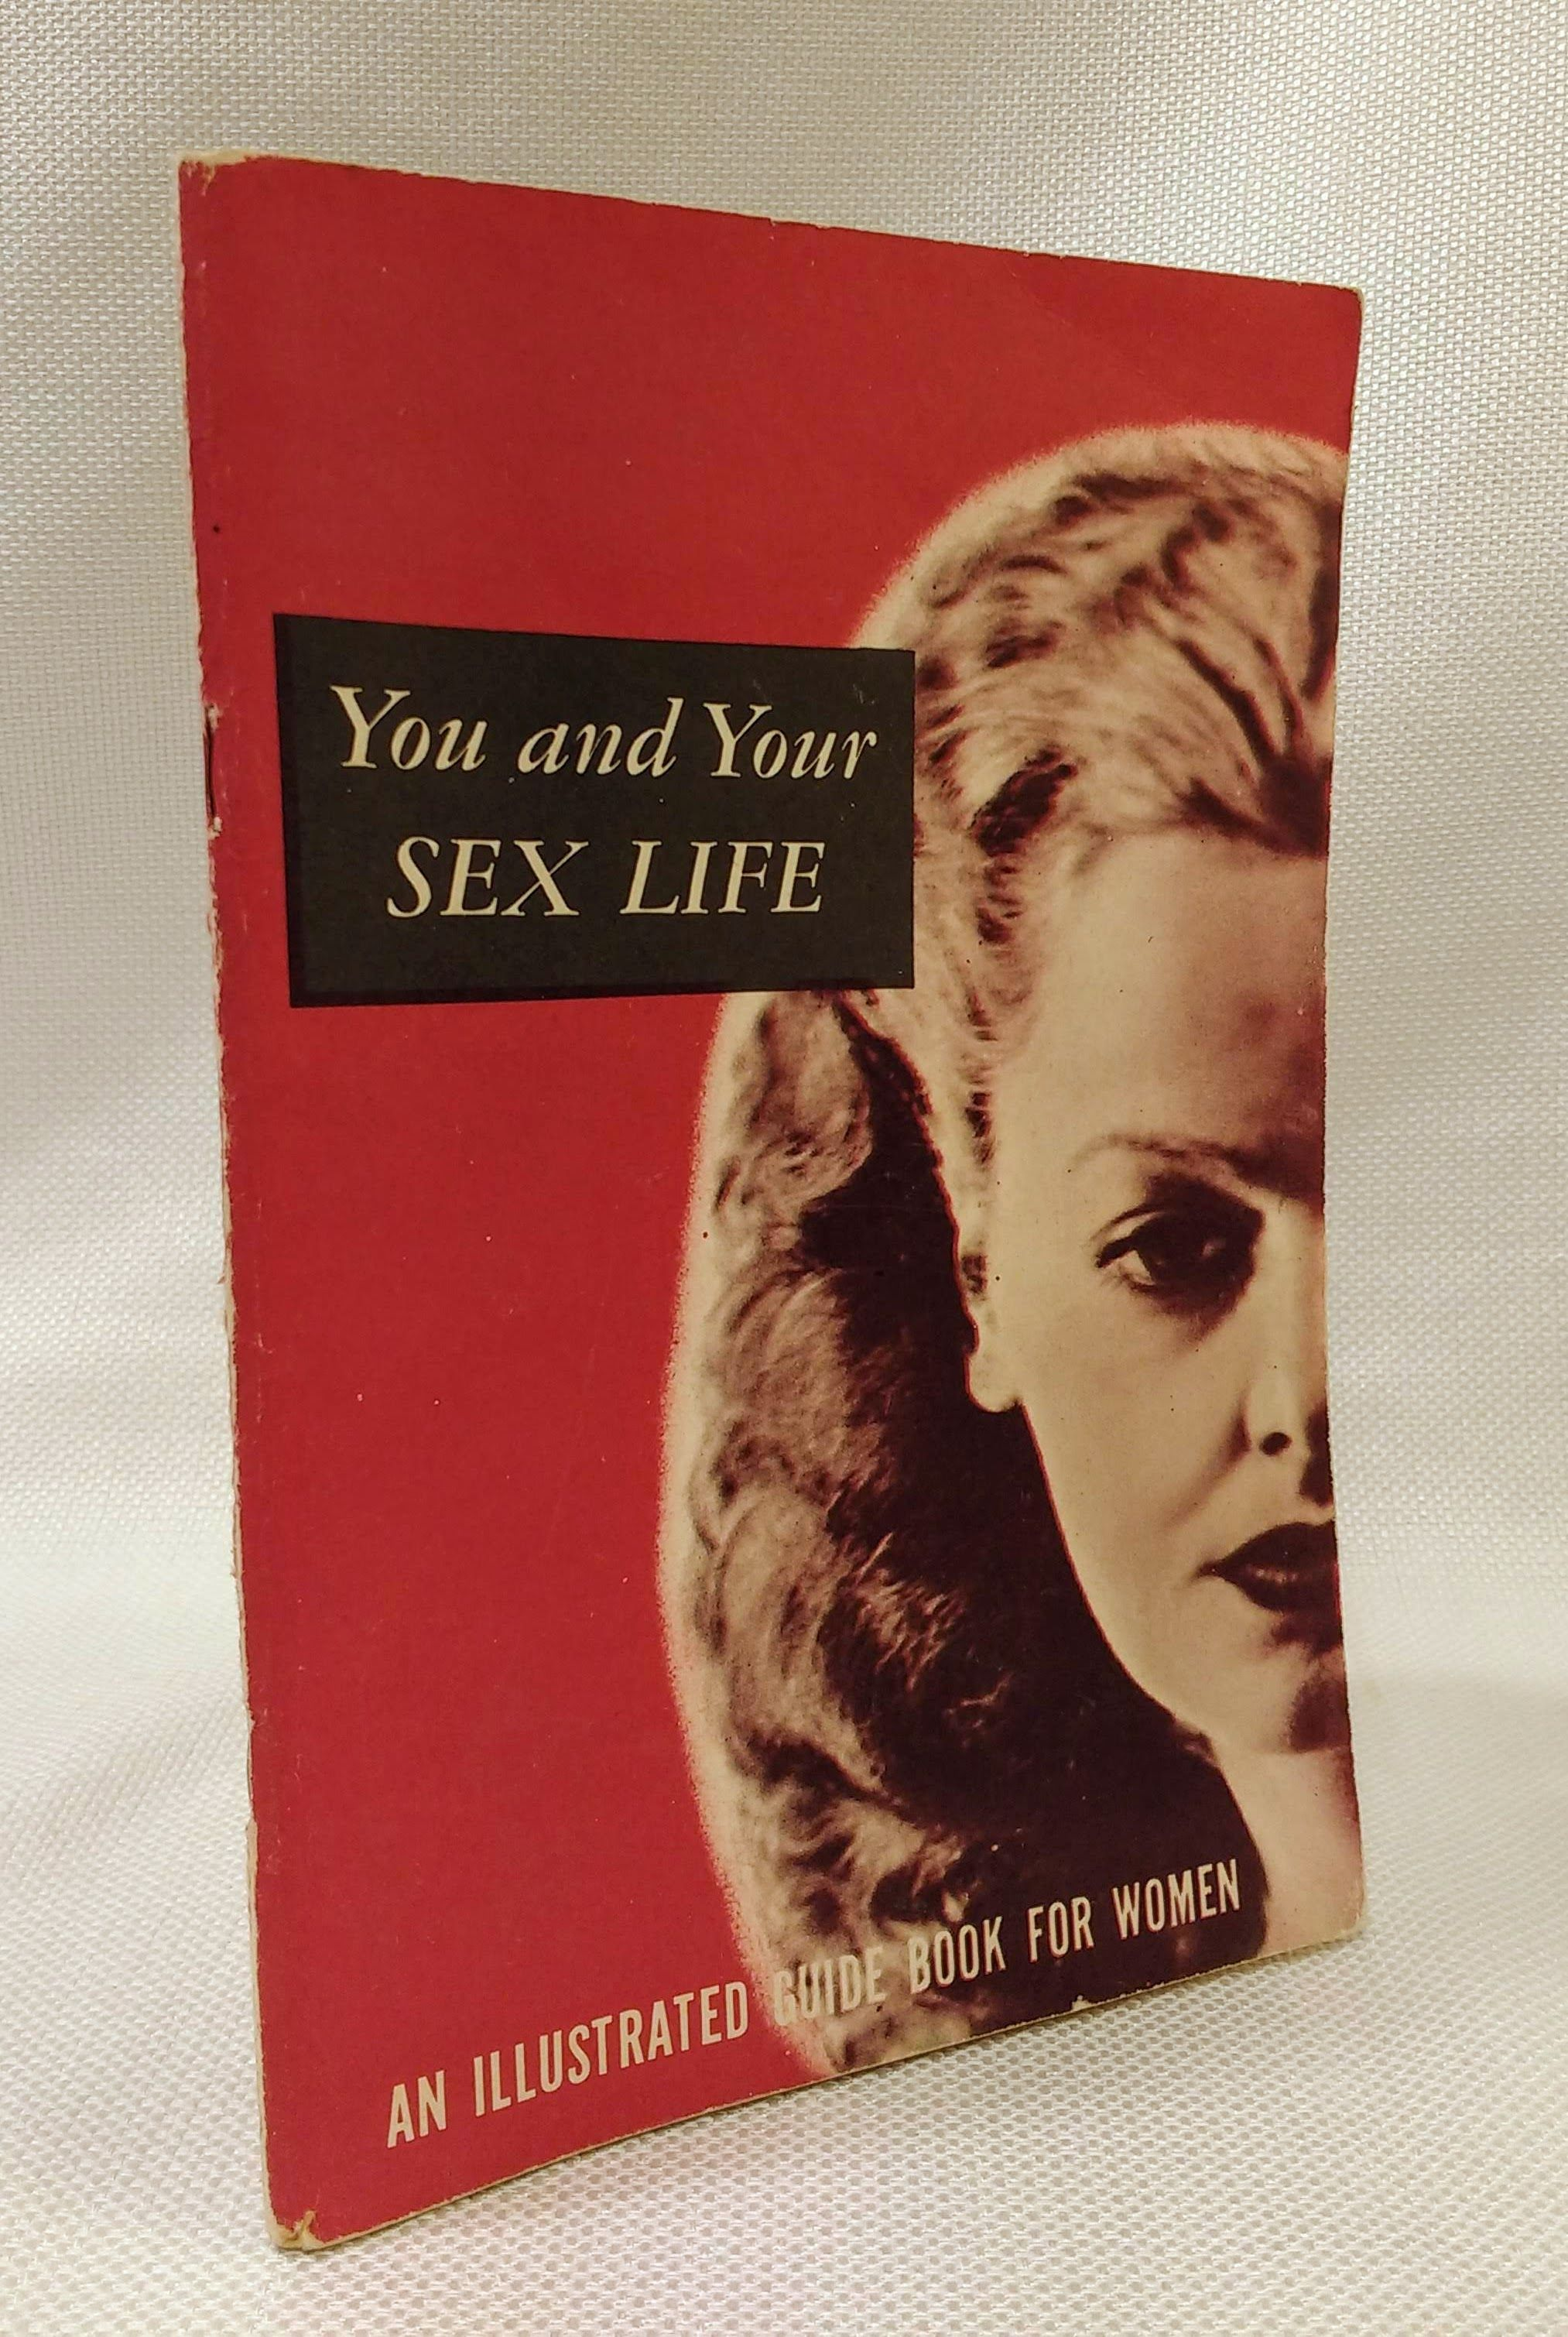 You and Your Sex Life An Illustrated Guide Book for Women, International Pictures, Inc.